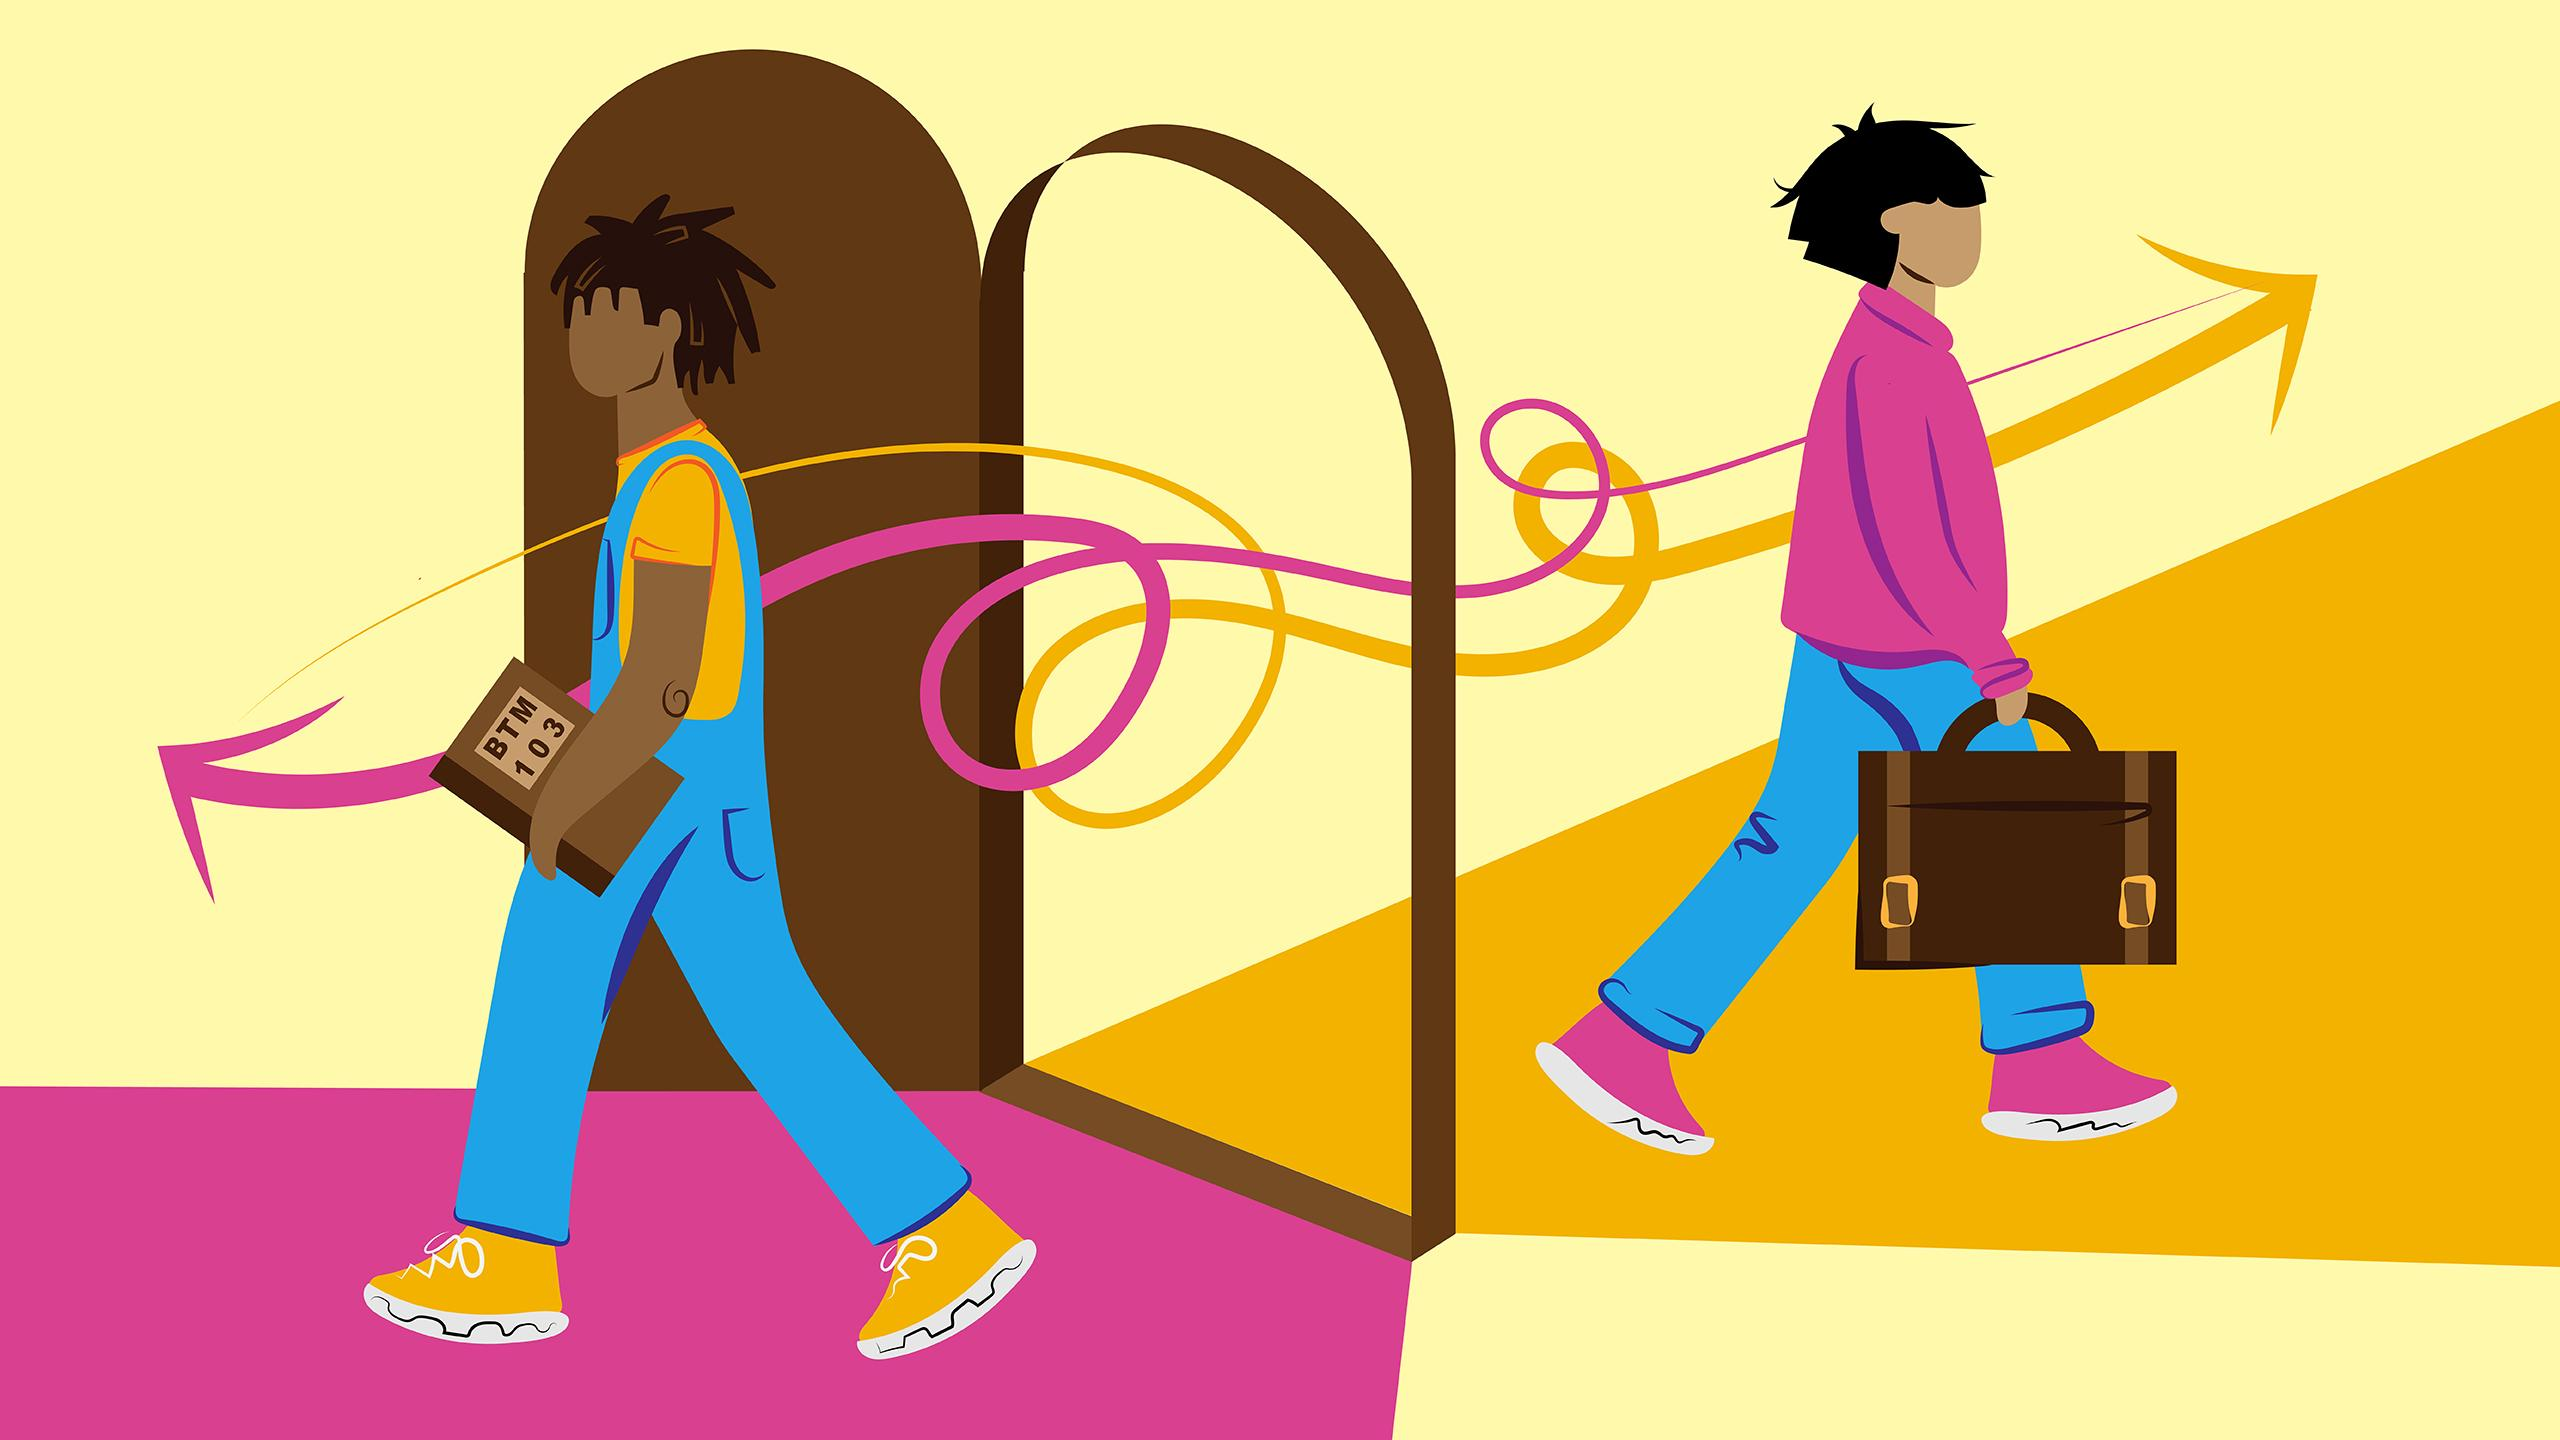 Illustration of a guy walking through an open door holding a textbook while a second person exits, walking in the opposite direction, holding a briefcase.